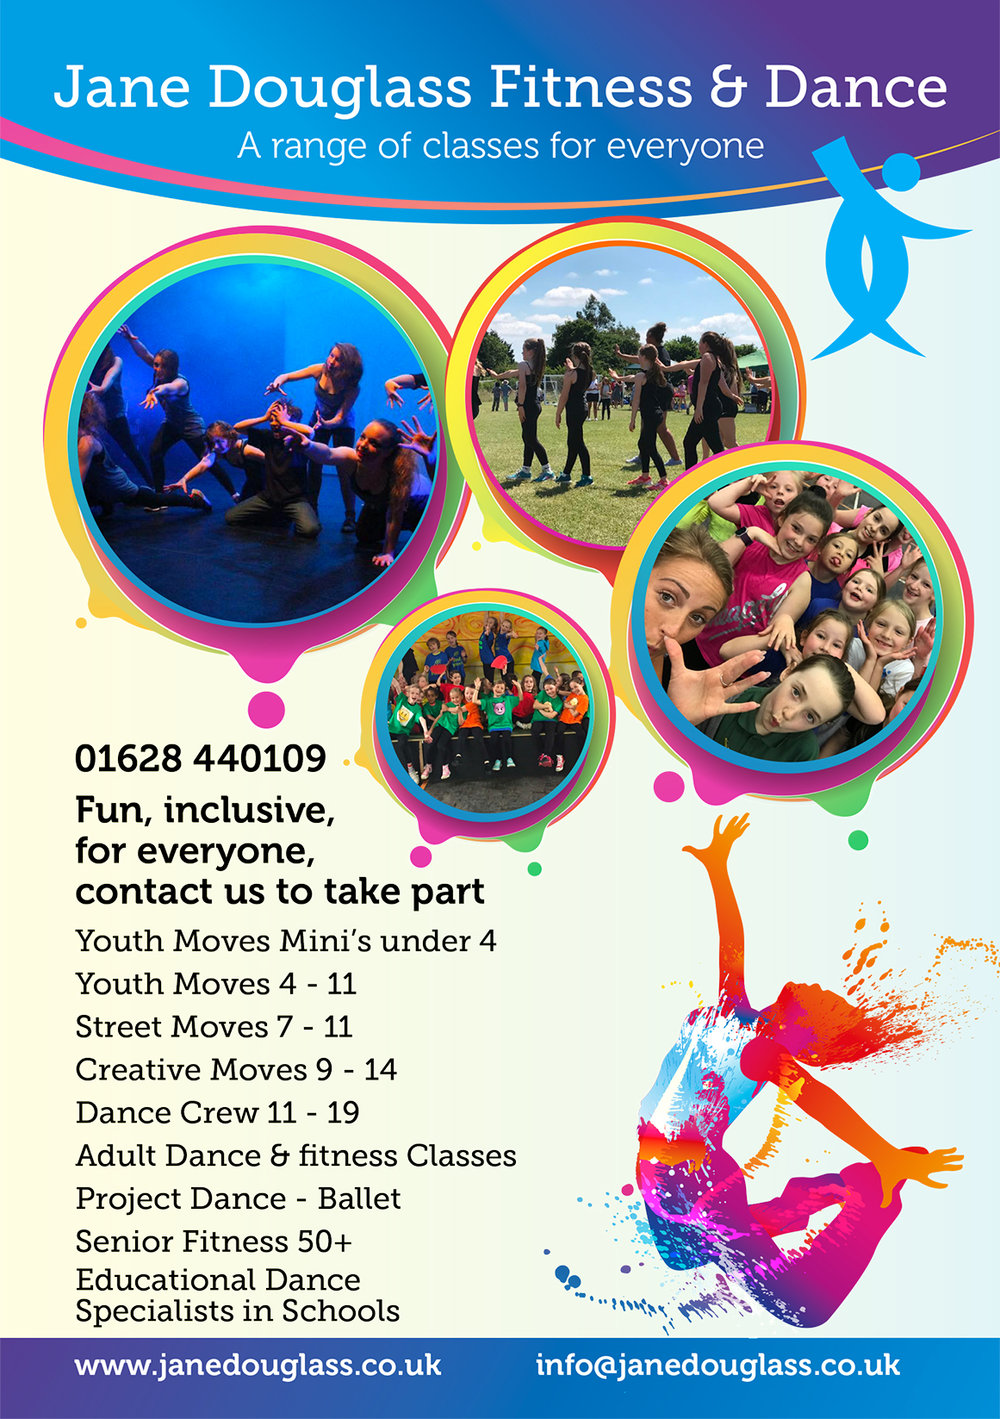 CHILDREN AND ADULT CLASSES IN MARLOW, MAIDENHEAD, WINDSOR EDUCATIONAL DANCE SPECIALISTS IN BERKSHIRE, BUCKINGHAMSHIRE & OXFORDSHIRE - CONTACT US FOR CURRICULUM DELIVERY, WORKSHOPS & INSET PROVISION IN YOUR SCHOOLS